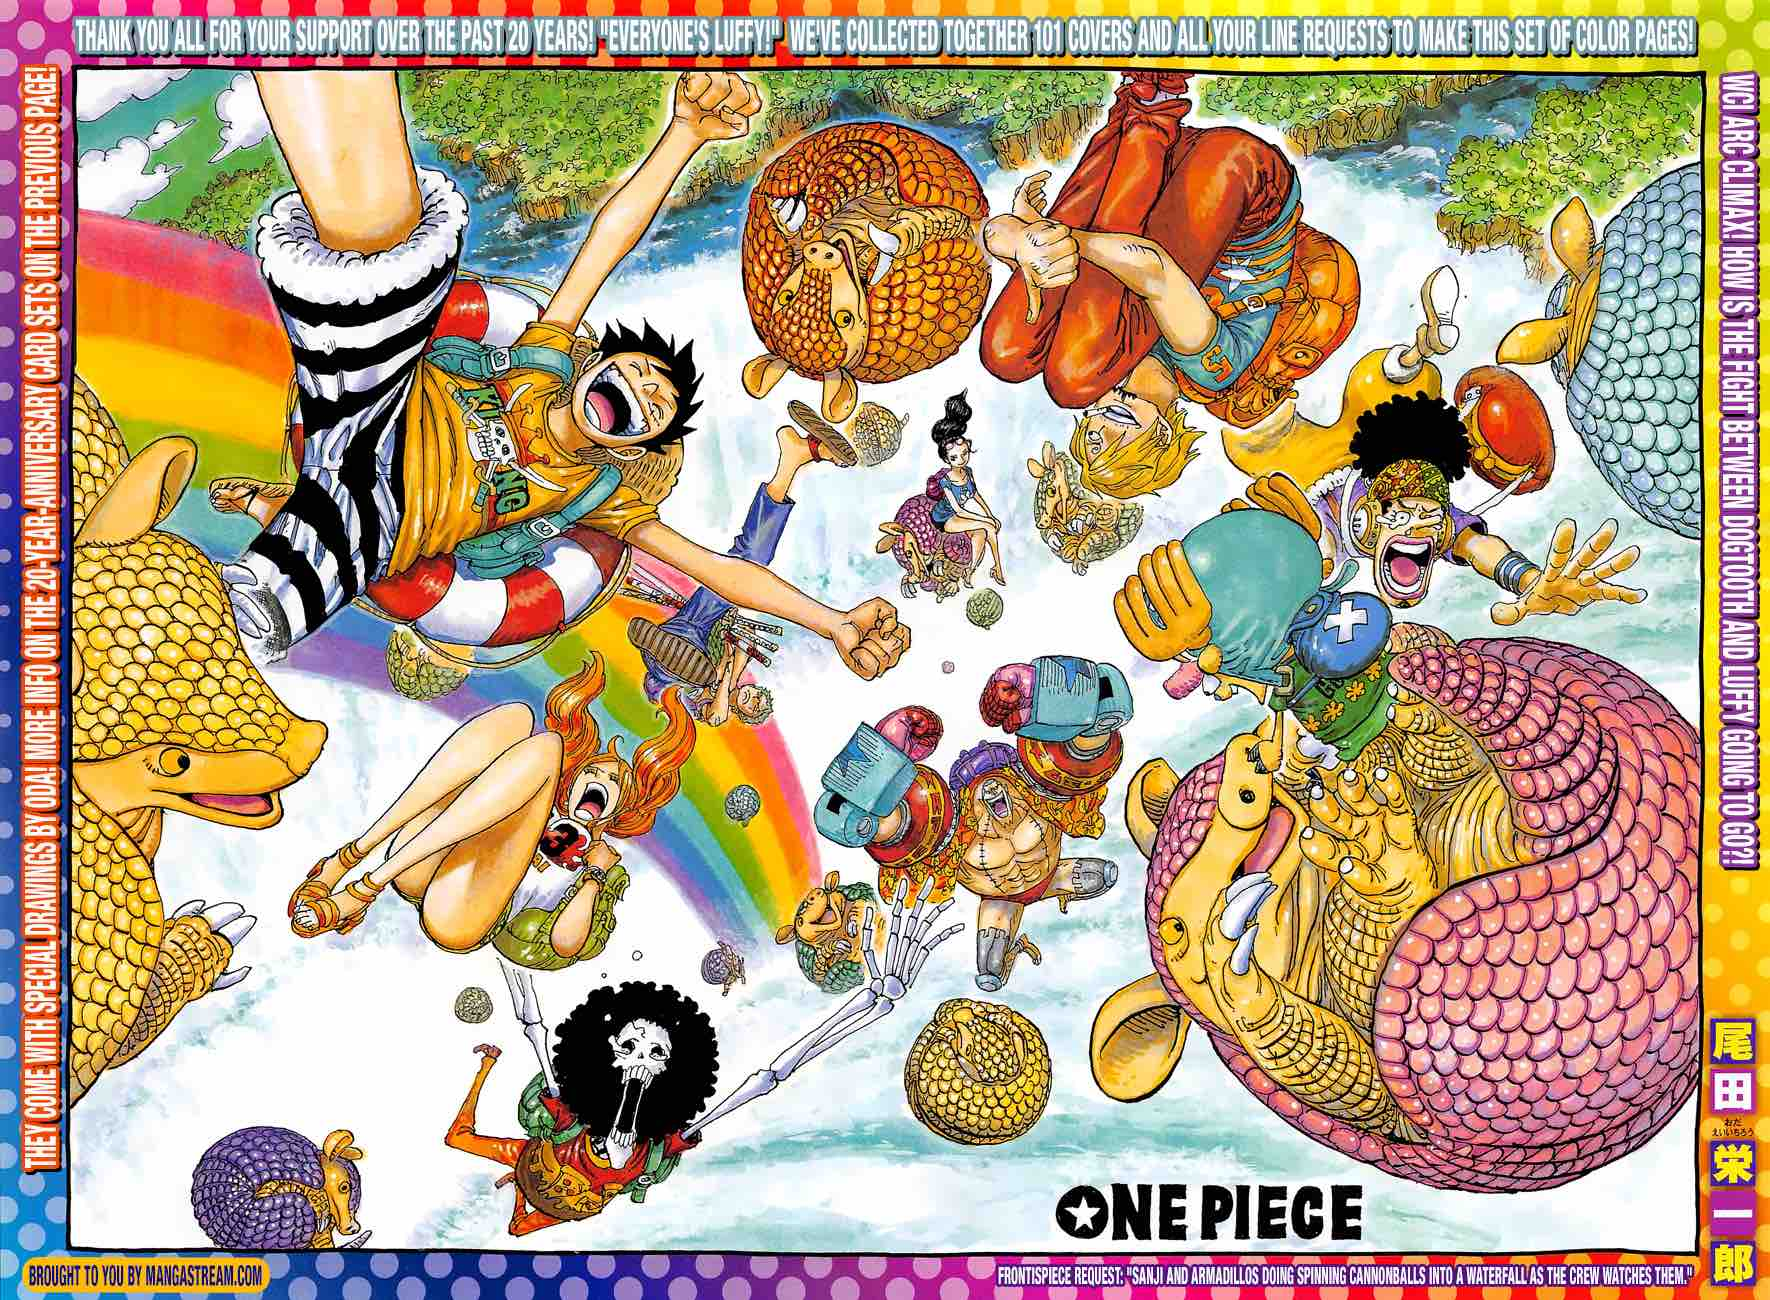 One Piece Chapter 886 Page 1